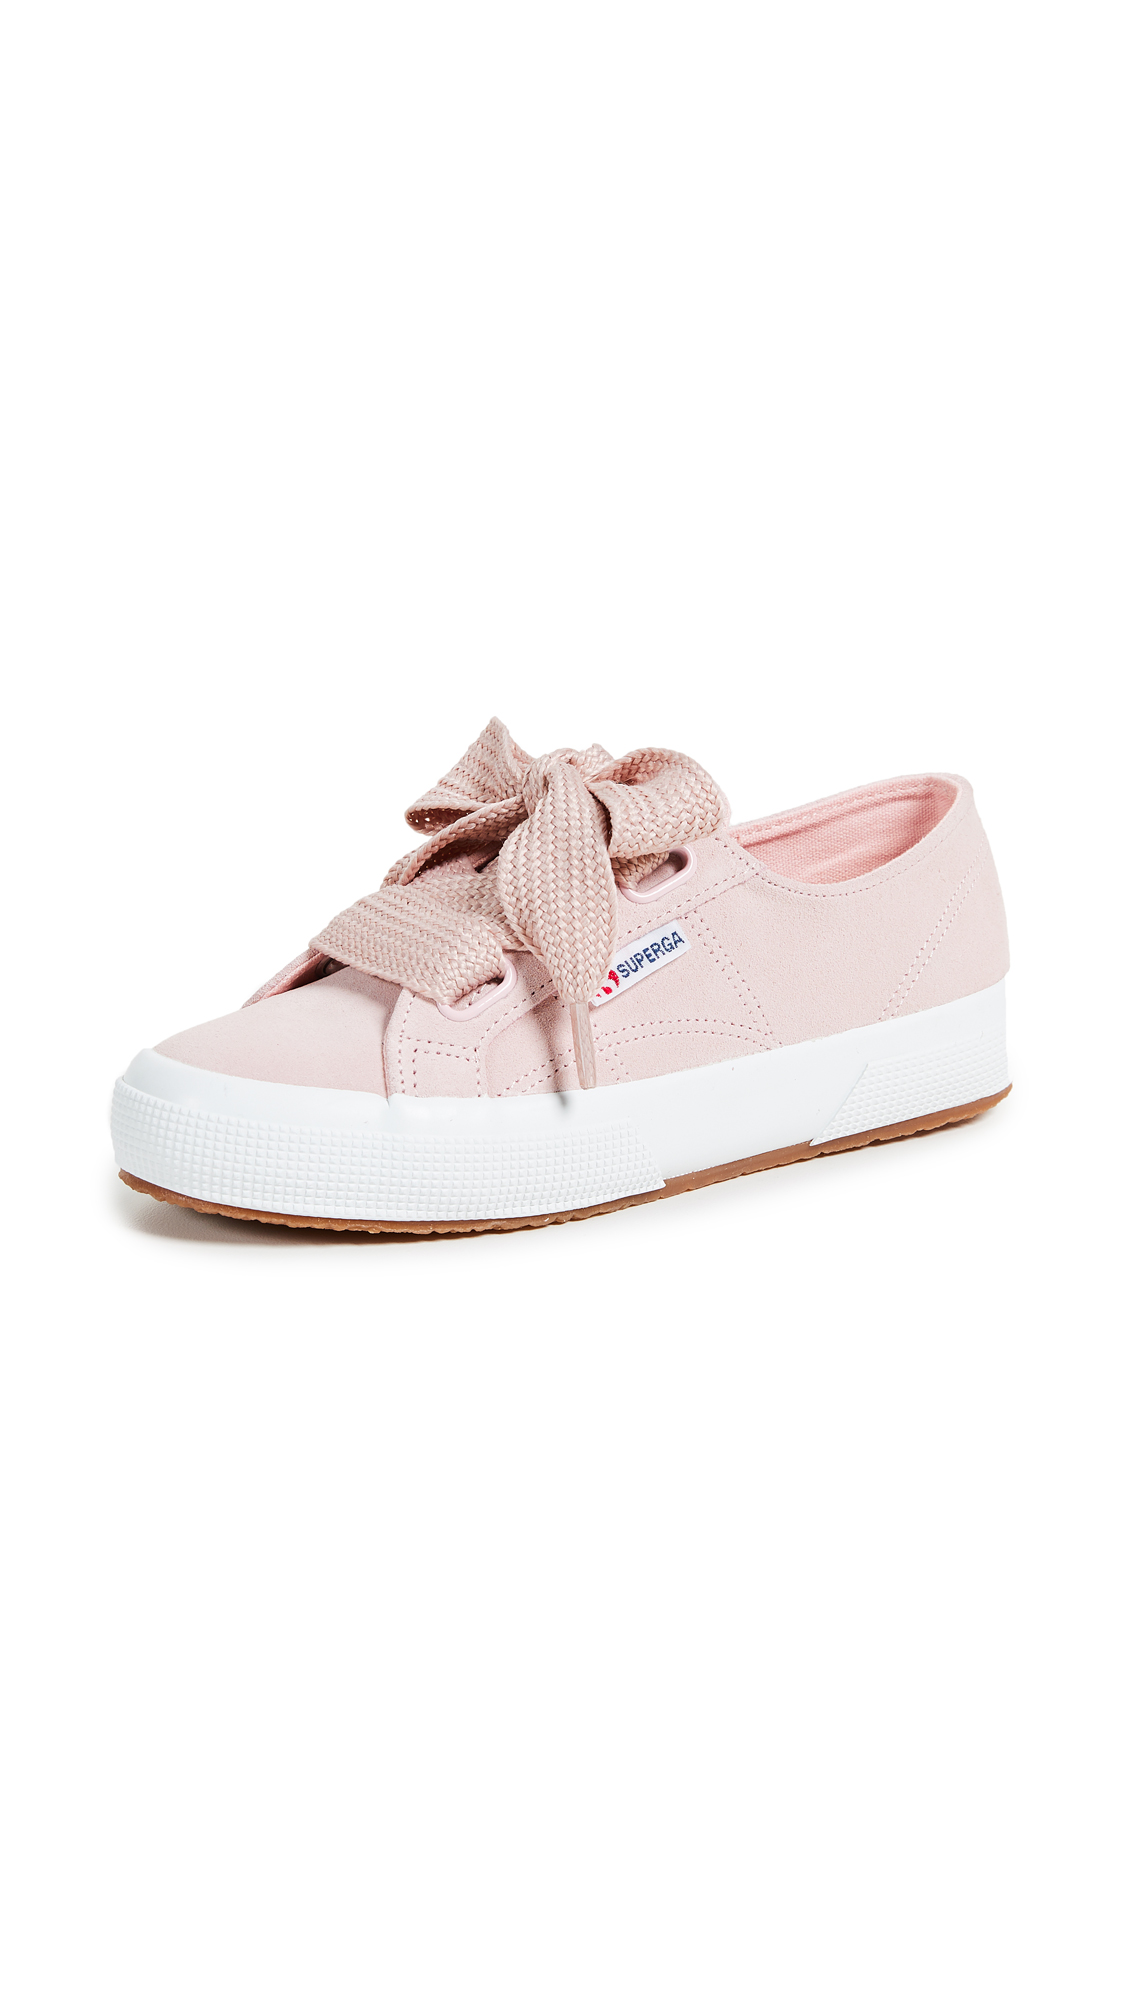 Superga 2750 Chunky Lace Sneakers - Pink